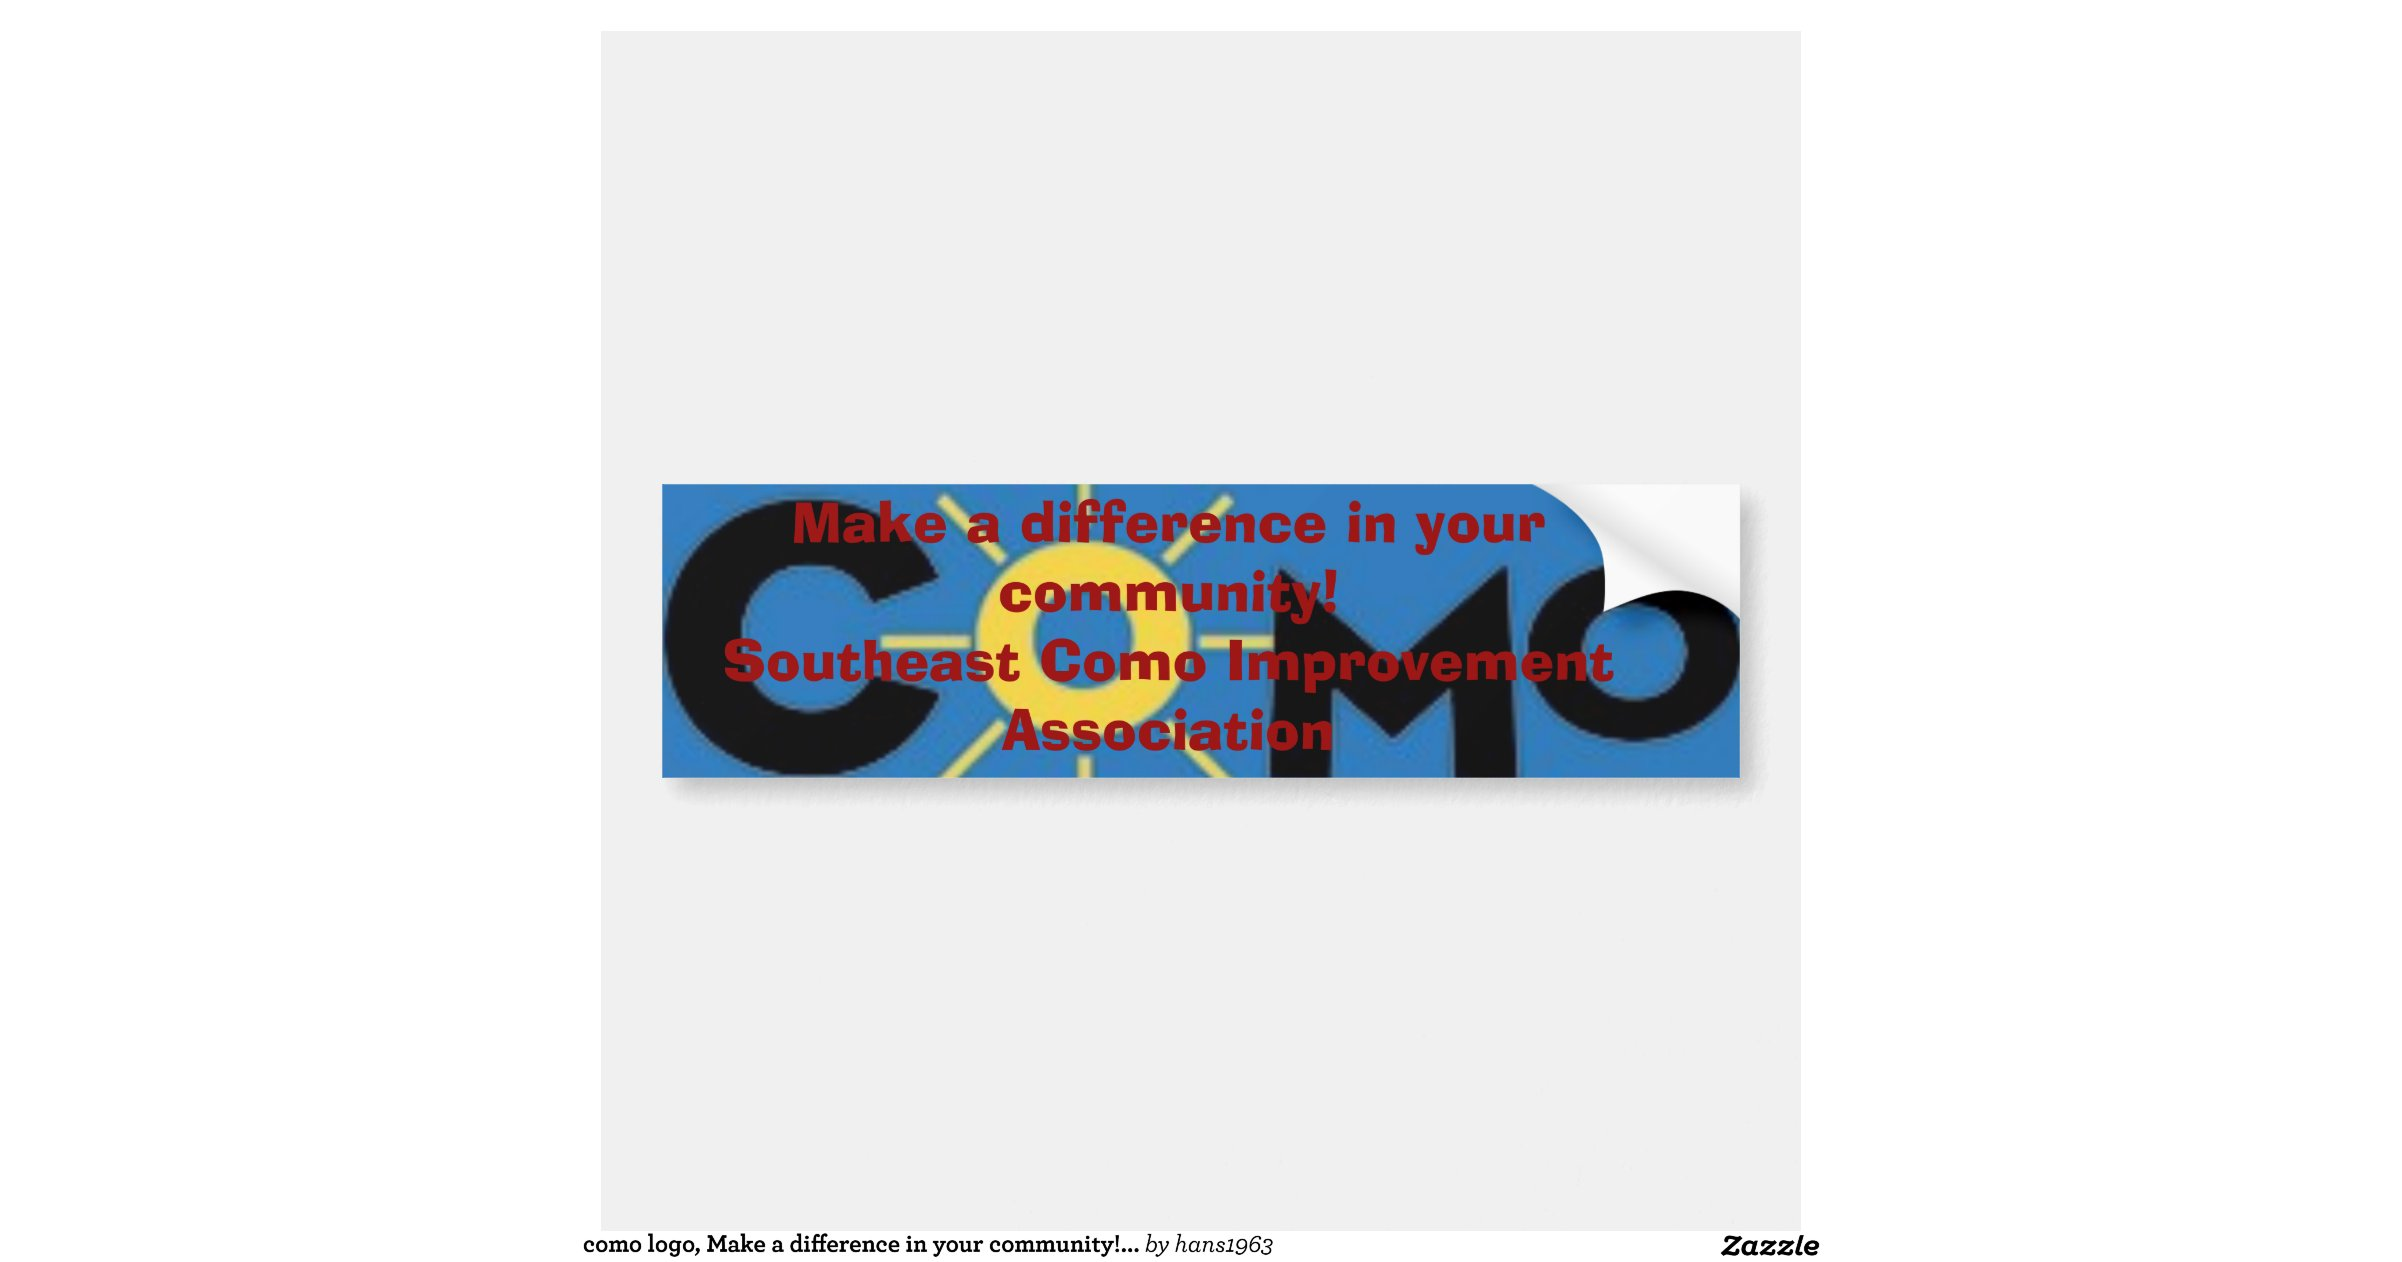 como logo make a difference in your community car bumper sticker